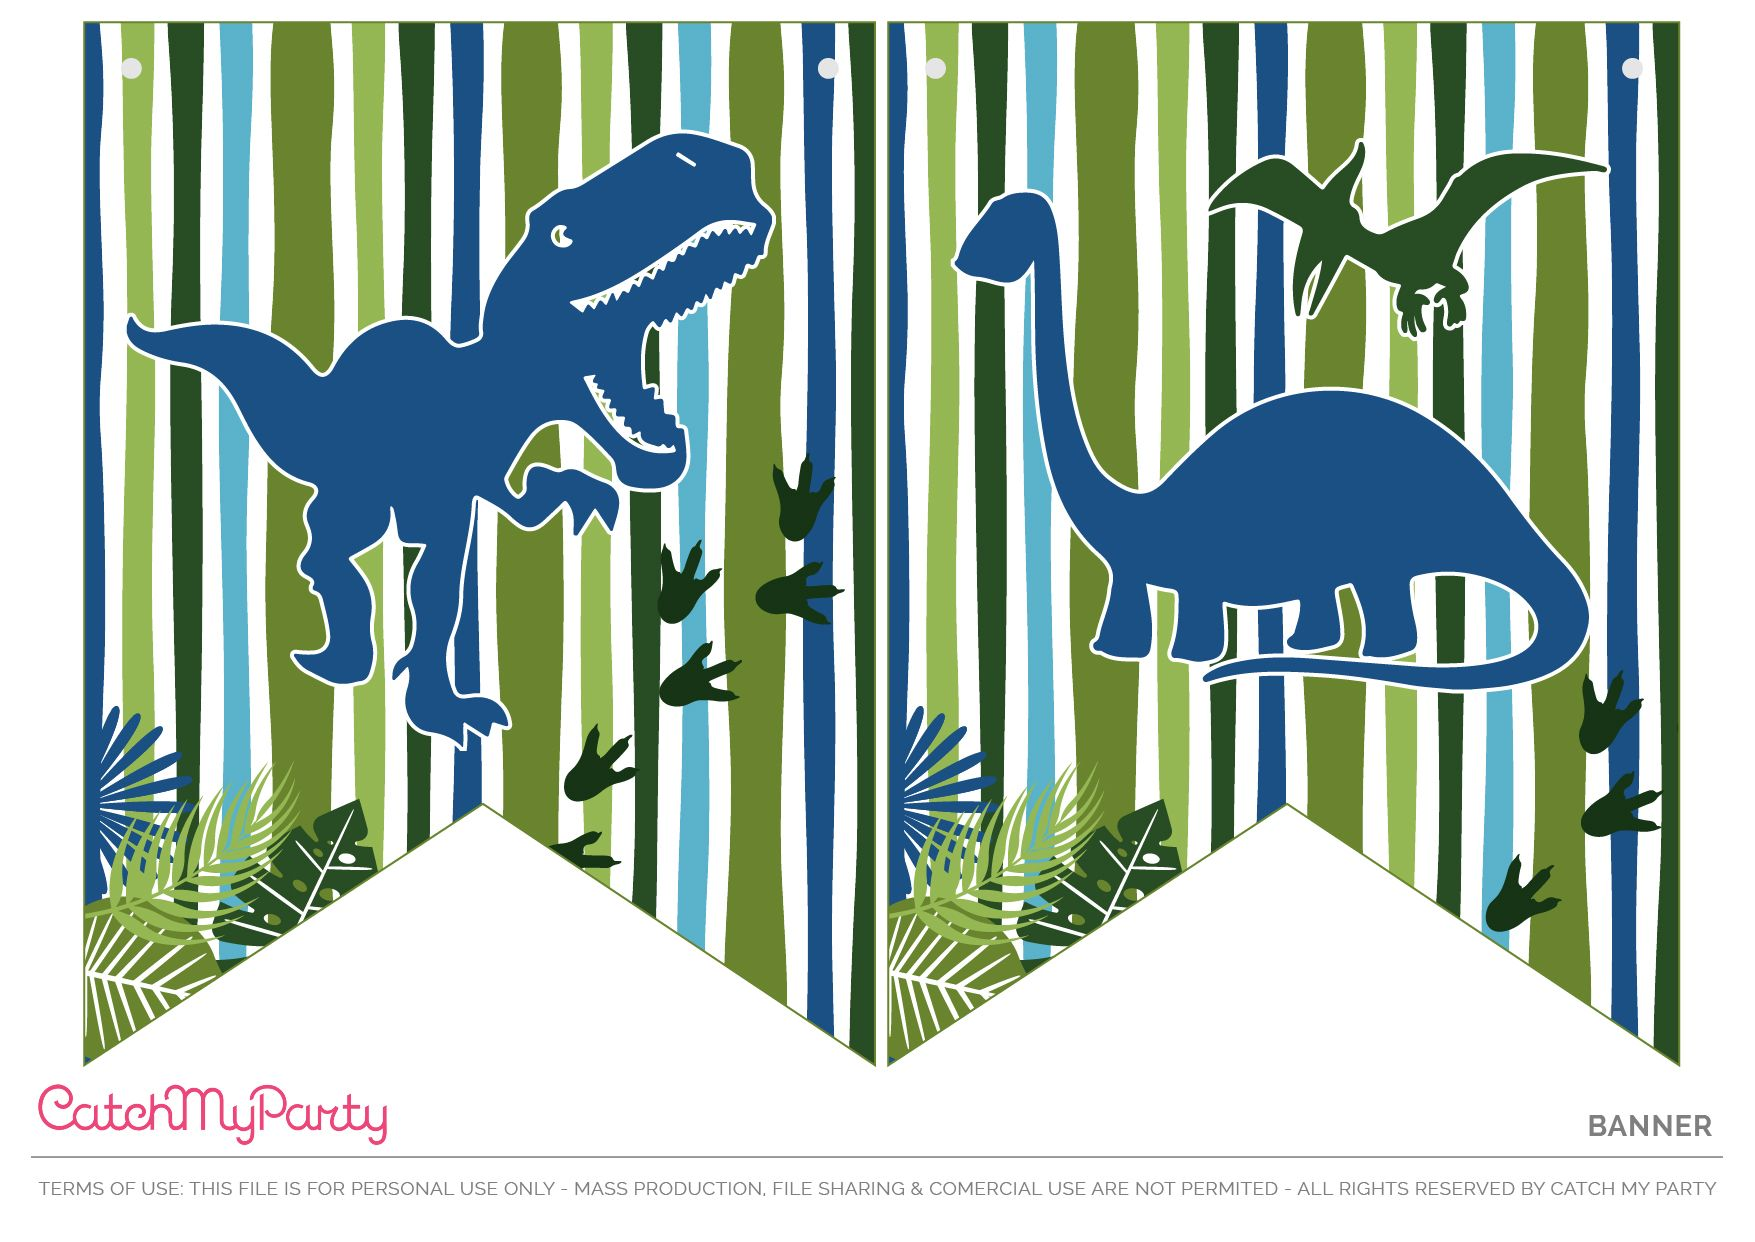 Download These Free Dinosaur Party Printables You Won T Believe The Ban Dinosaur Party Decorations Dinosaur Birthday Party Dinosaur Birthday Party Decorations